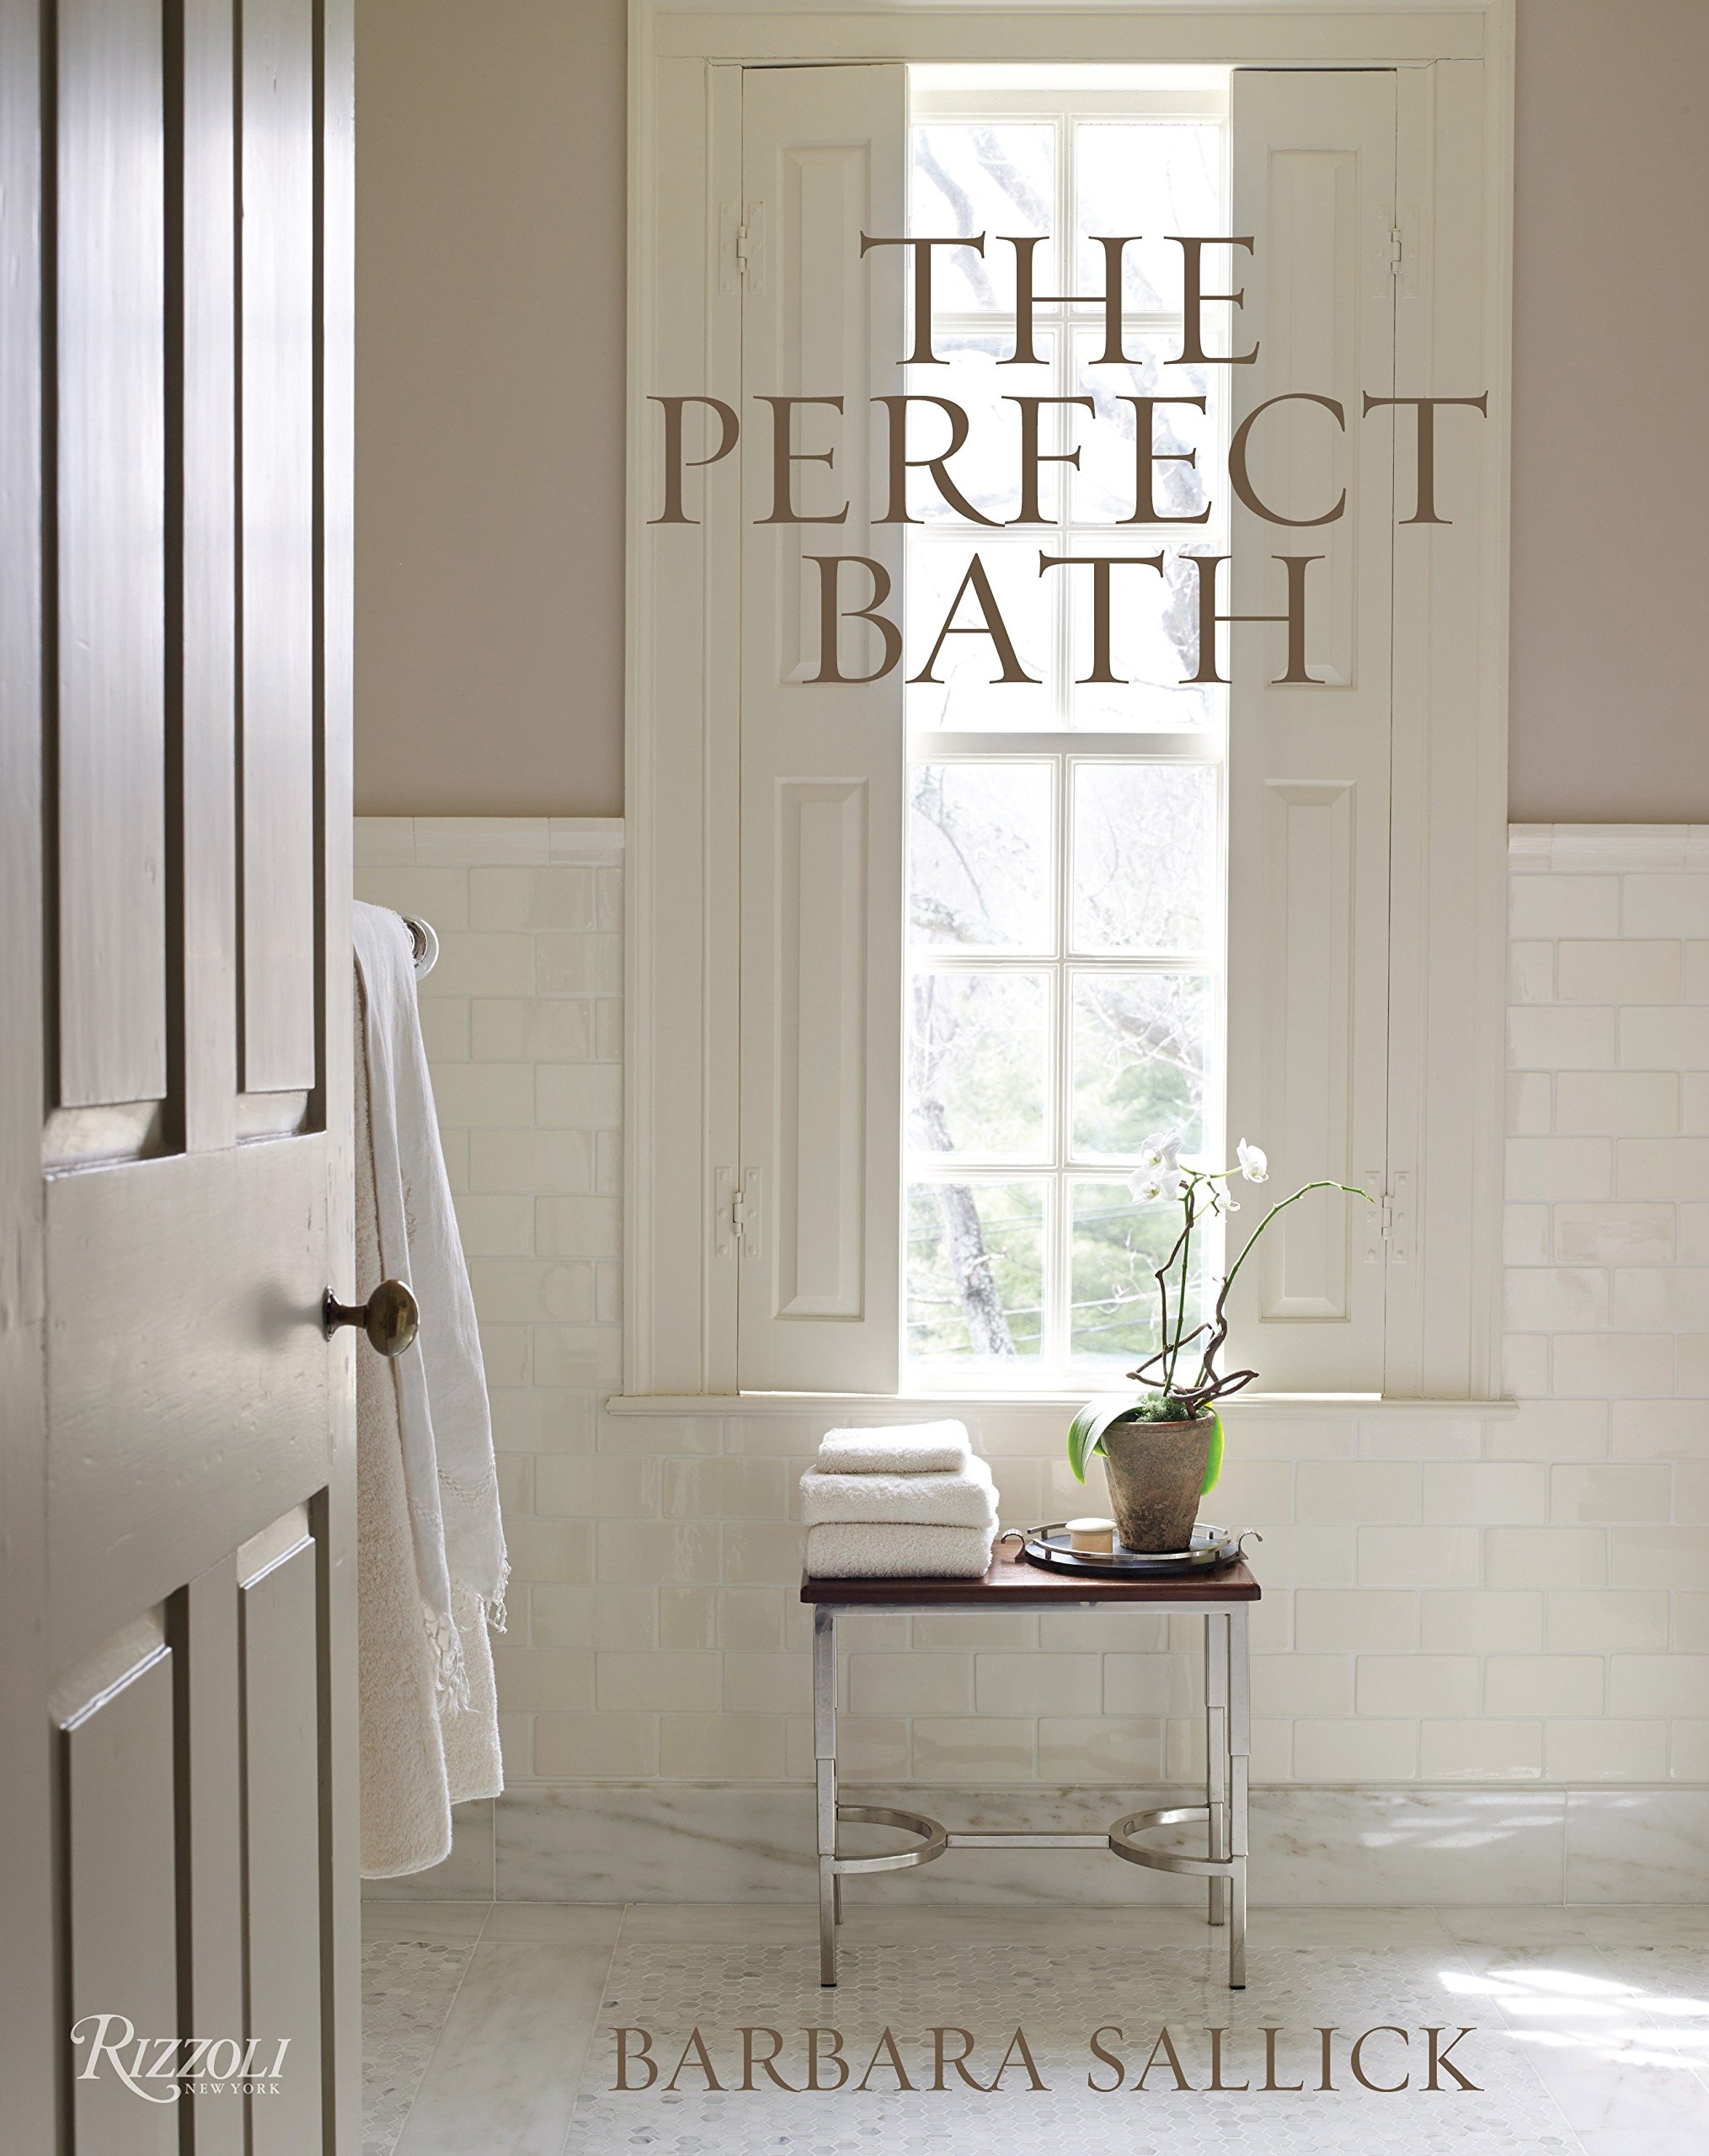 . The Perfect Bath  Barbara Sallick  9780847848935  Amazon com  Books